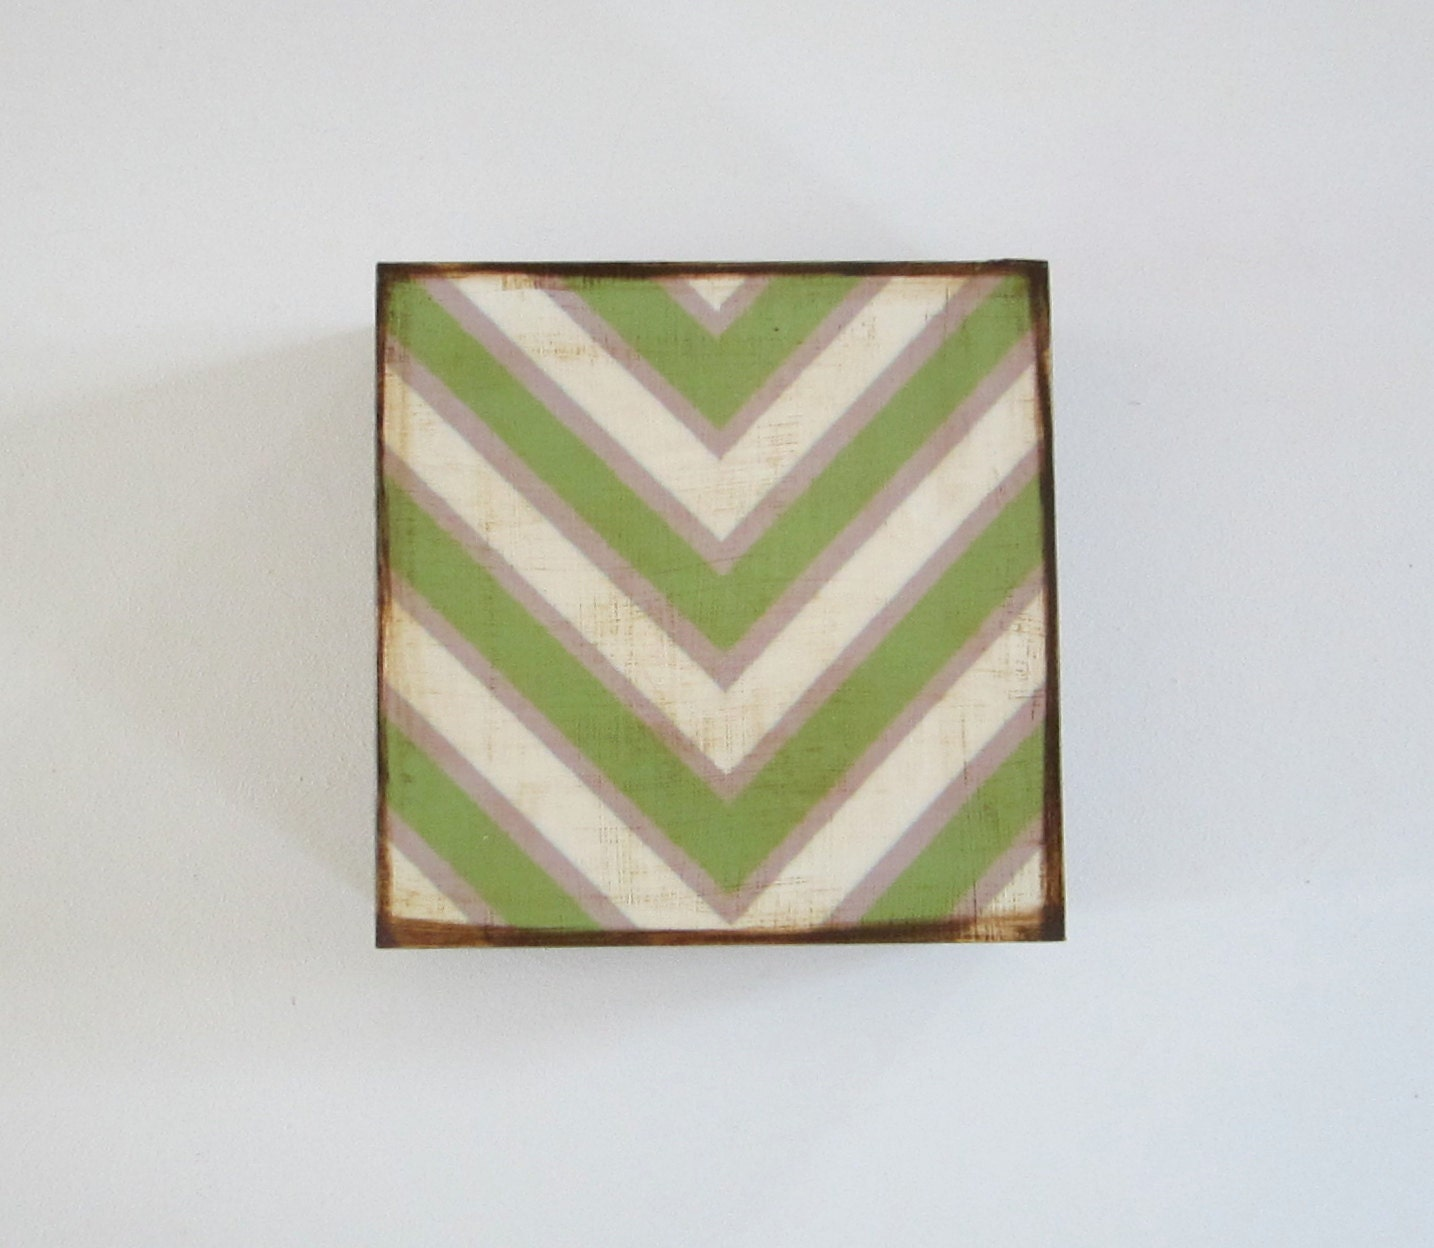 V Pattern 5x5 art block wood Chevron Military Green Gray White  graphic modern pattern shapes red tile studio - redtilestudio